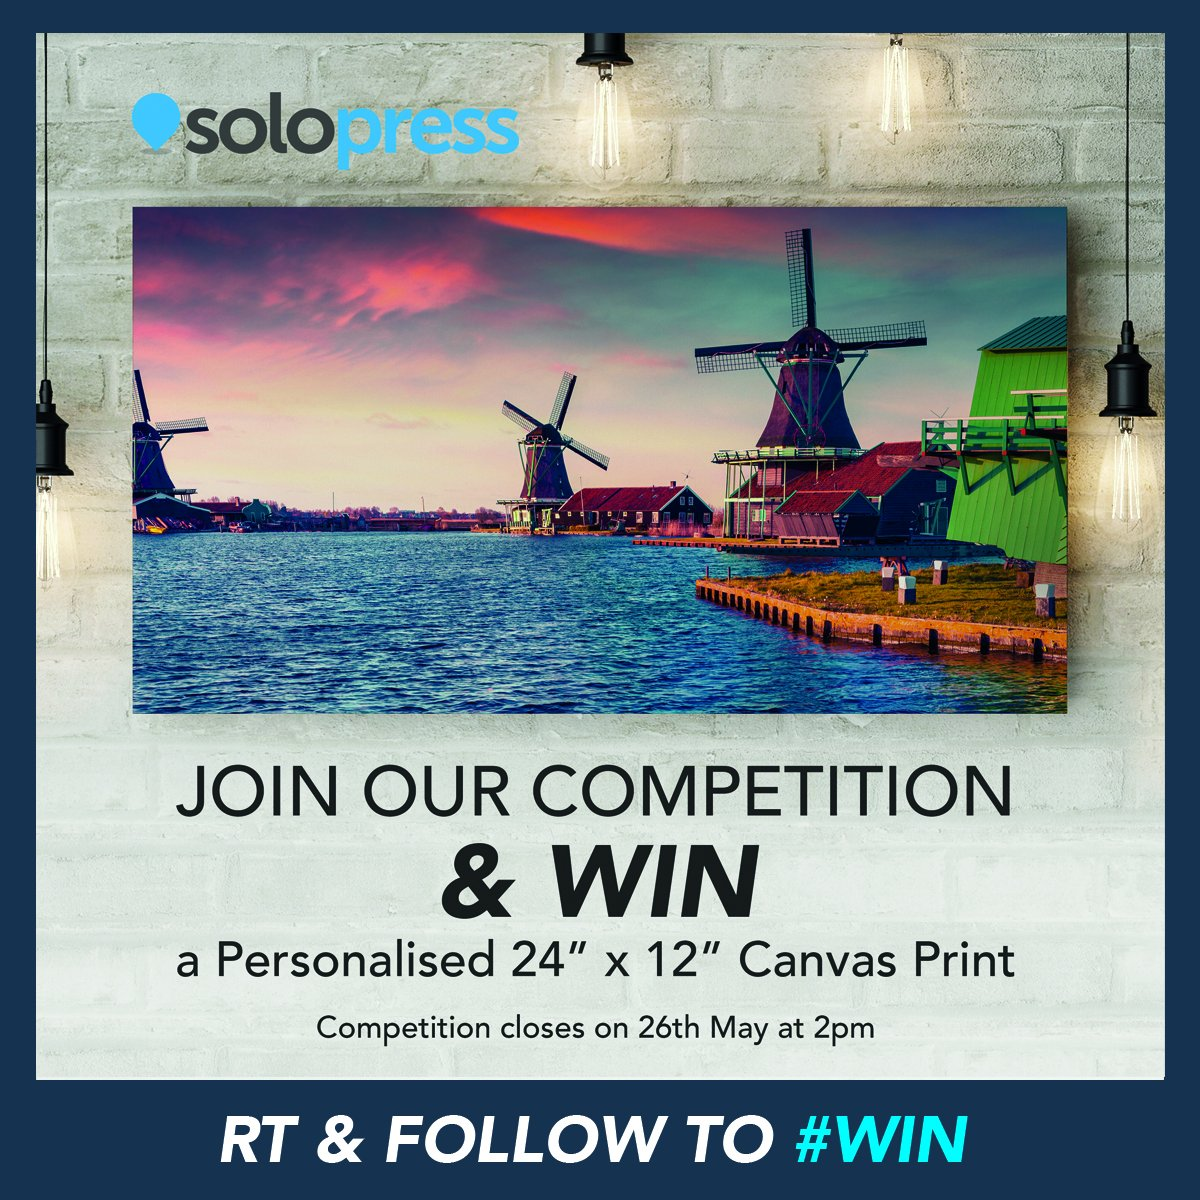 Want to #WIN your own #Canvas? Enter our #competition! RT &amp; FOLLOW @Solopress  #competitions #giveaway #giveaways #contest #contests #prize<br>http://pic.twitter.com/N4H0DLVuR7